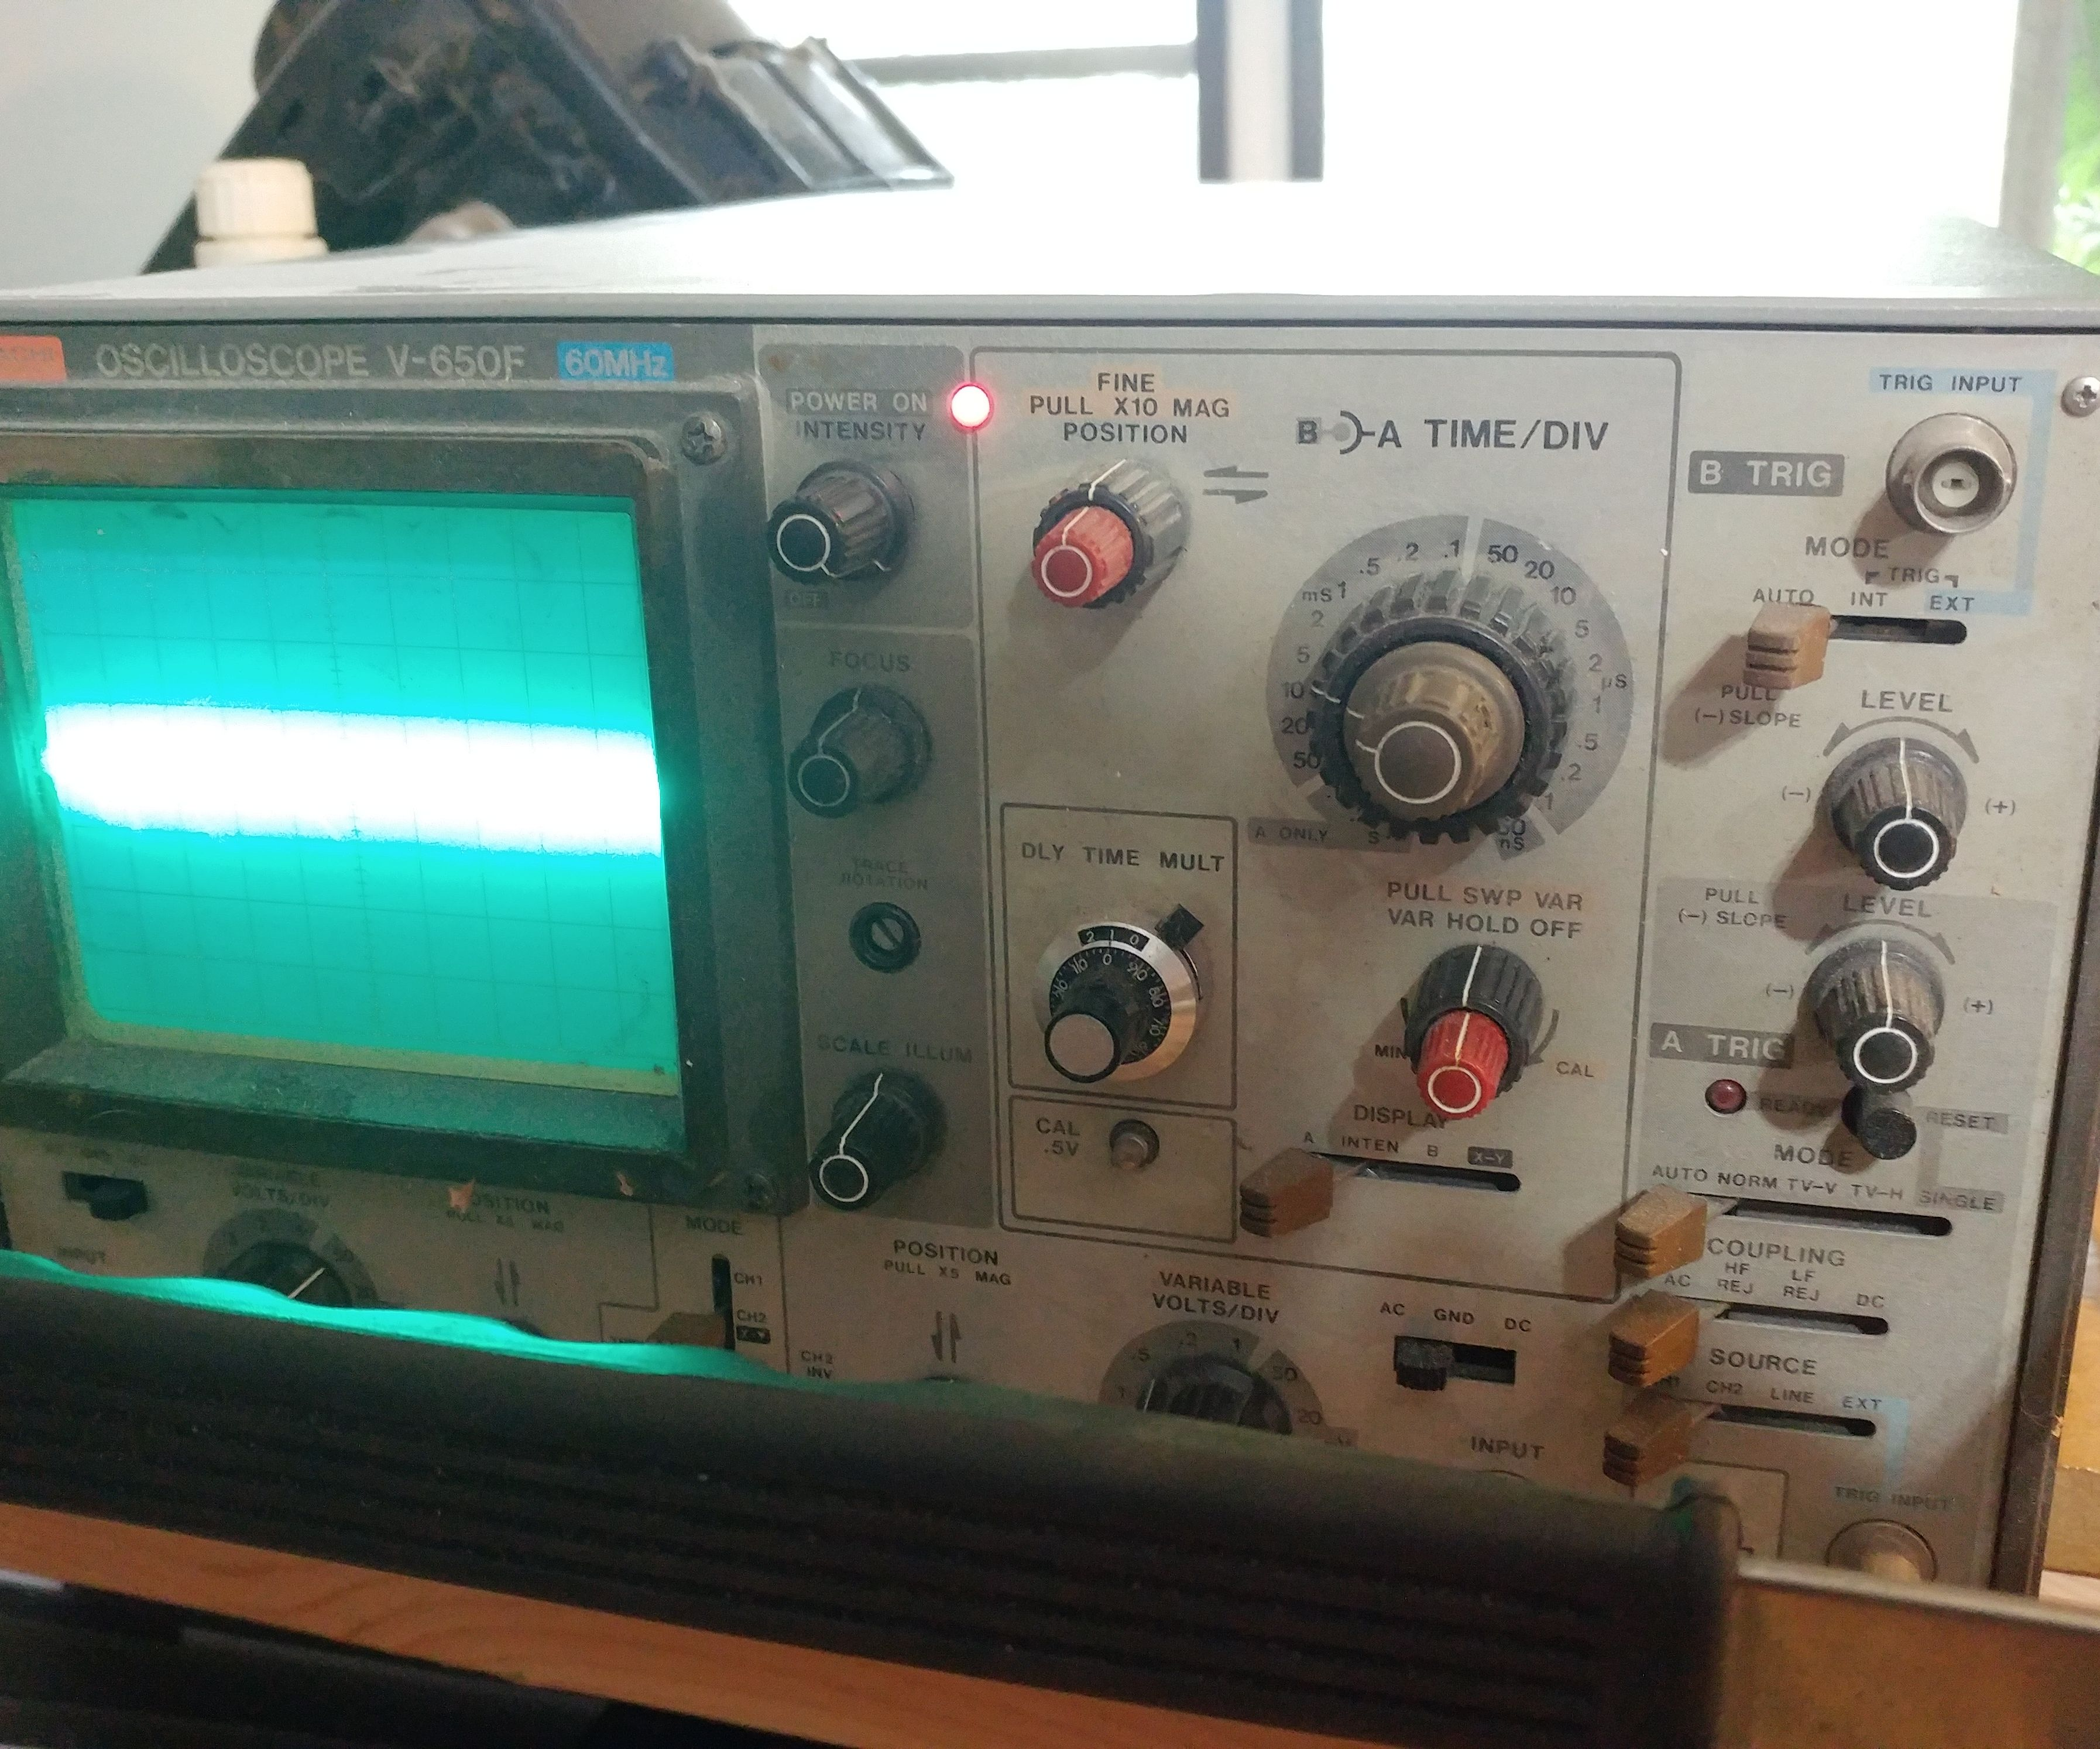 Measure Rotational Speed With an Oscilloscope